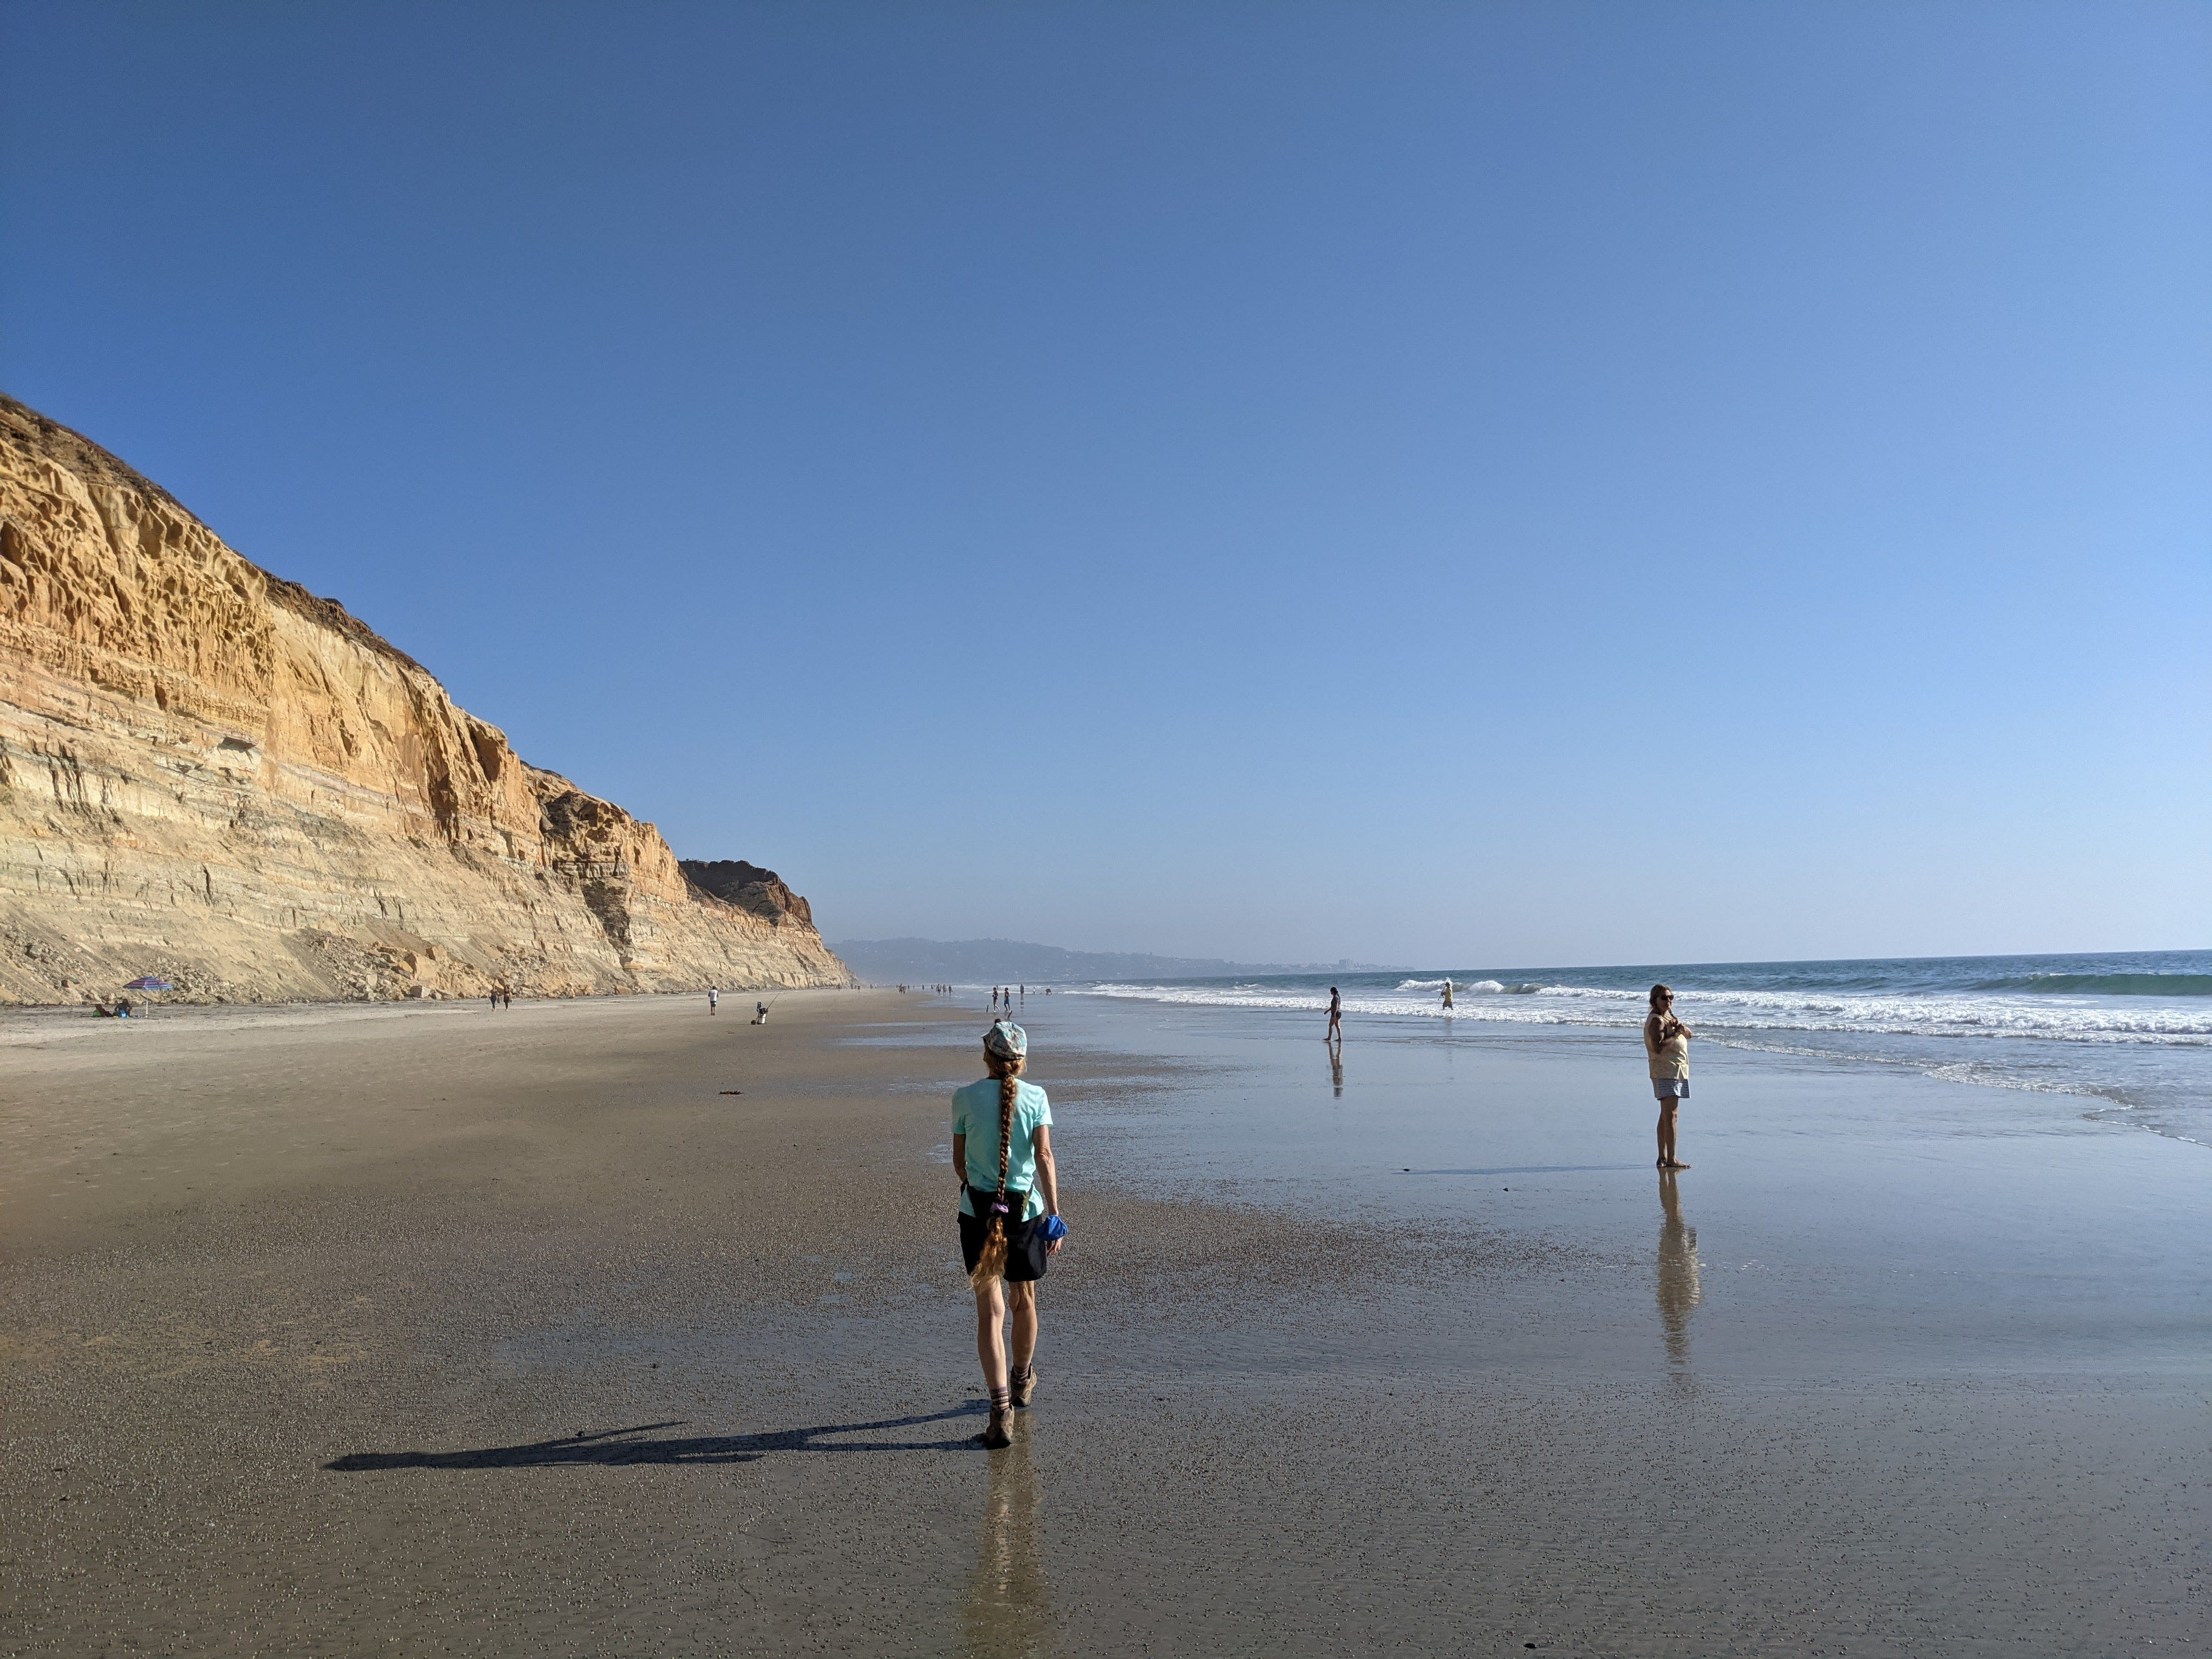 Hiker walking along the beach at Torrey Pines State Natural Reserve in San Diego County